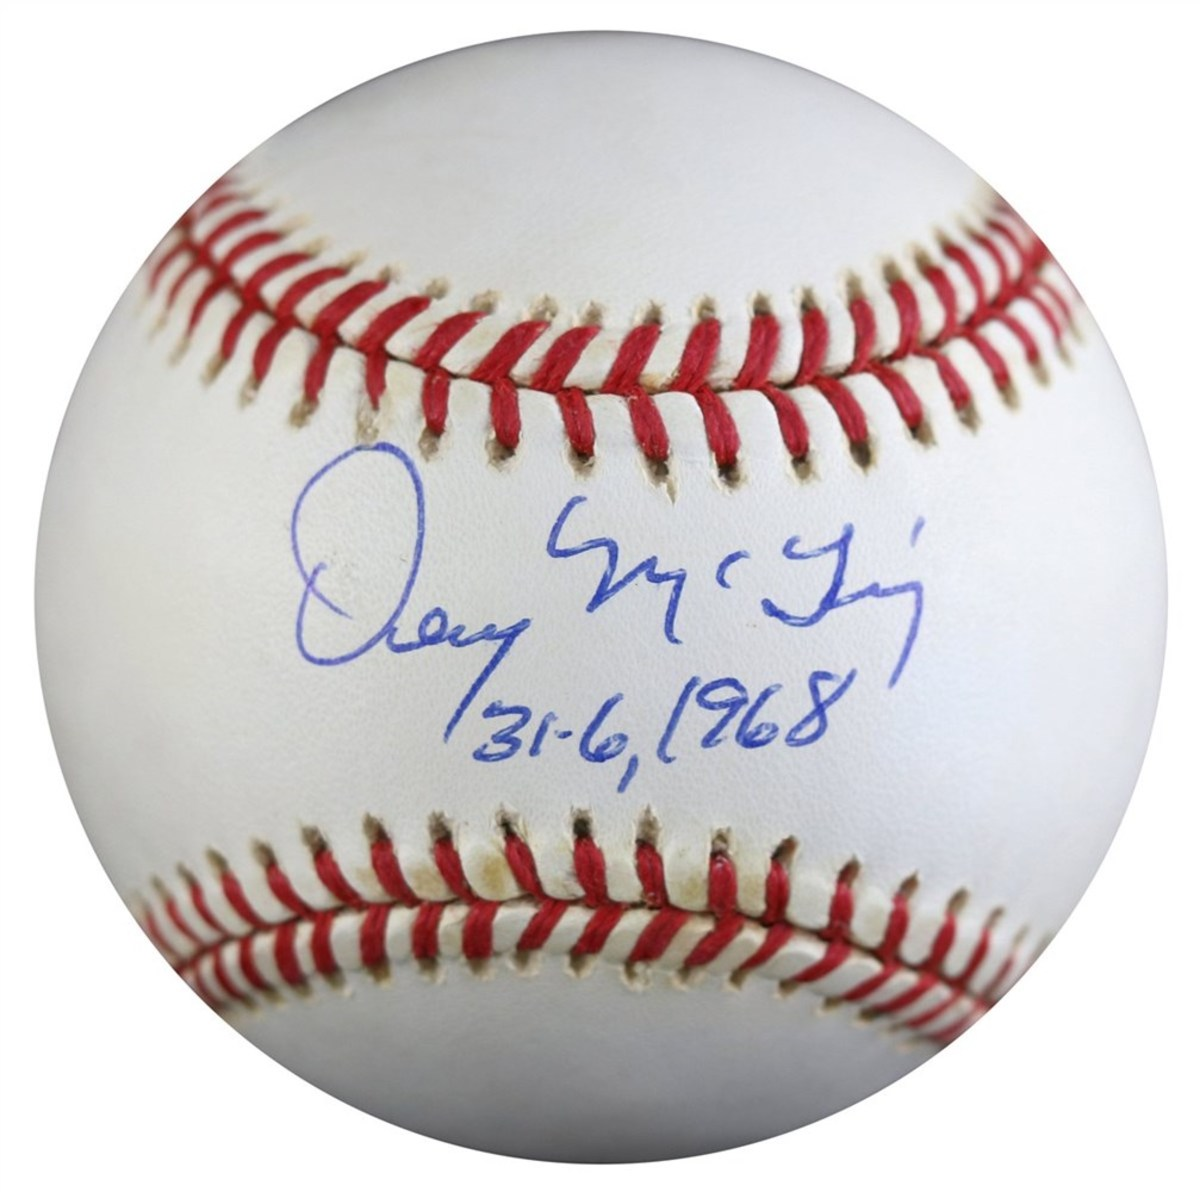 Detroit Tigers pitcher Denny McLain's autograph, in commemoration of the 1968 season: 31 wins and 6 losses.